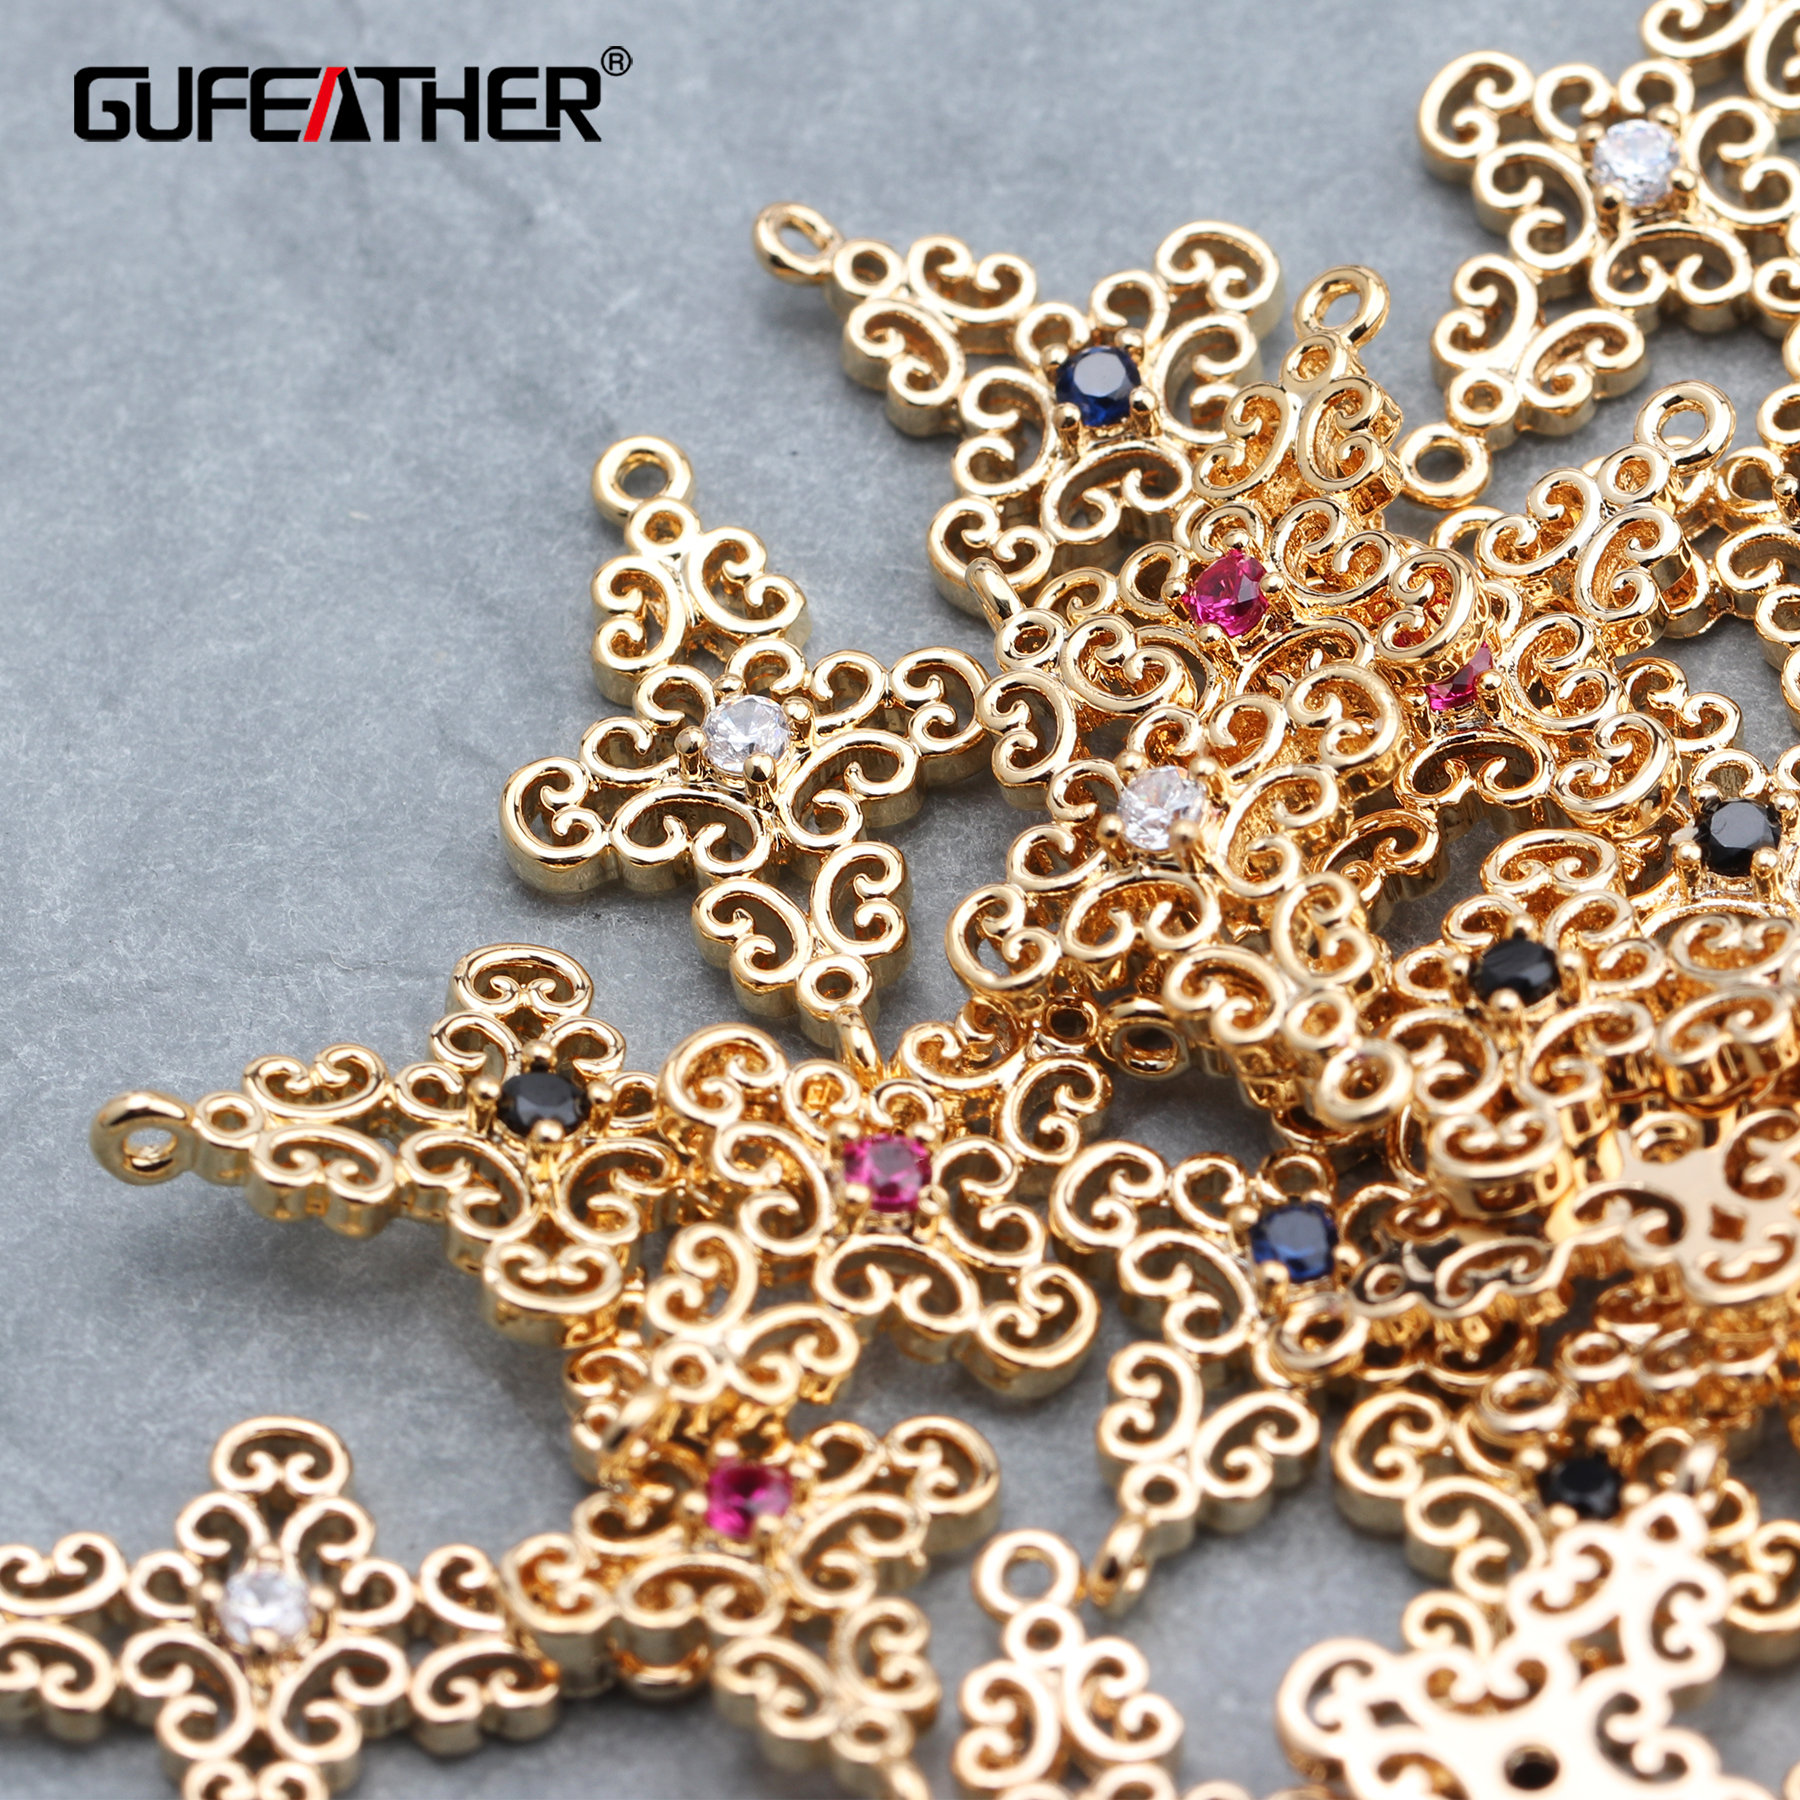 GUFEATHER M616,jewelry Accessories,18k Gold Plated,jump Ring,diy Earring,hand Made,diy Zircon Pendant,jewelry Making,10pcs/lot